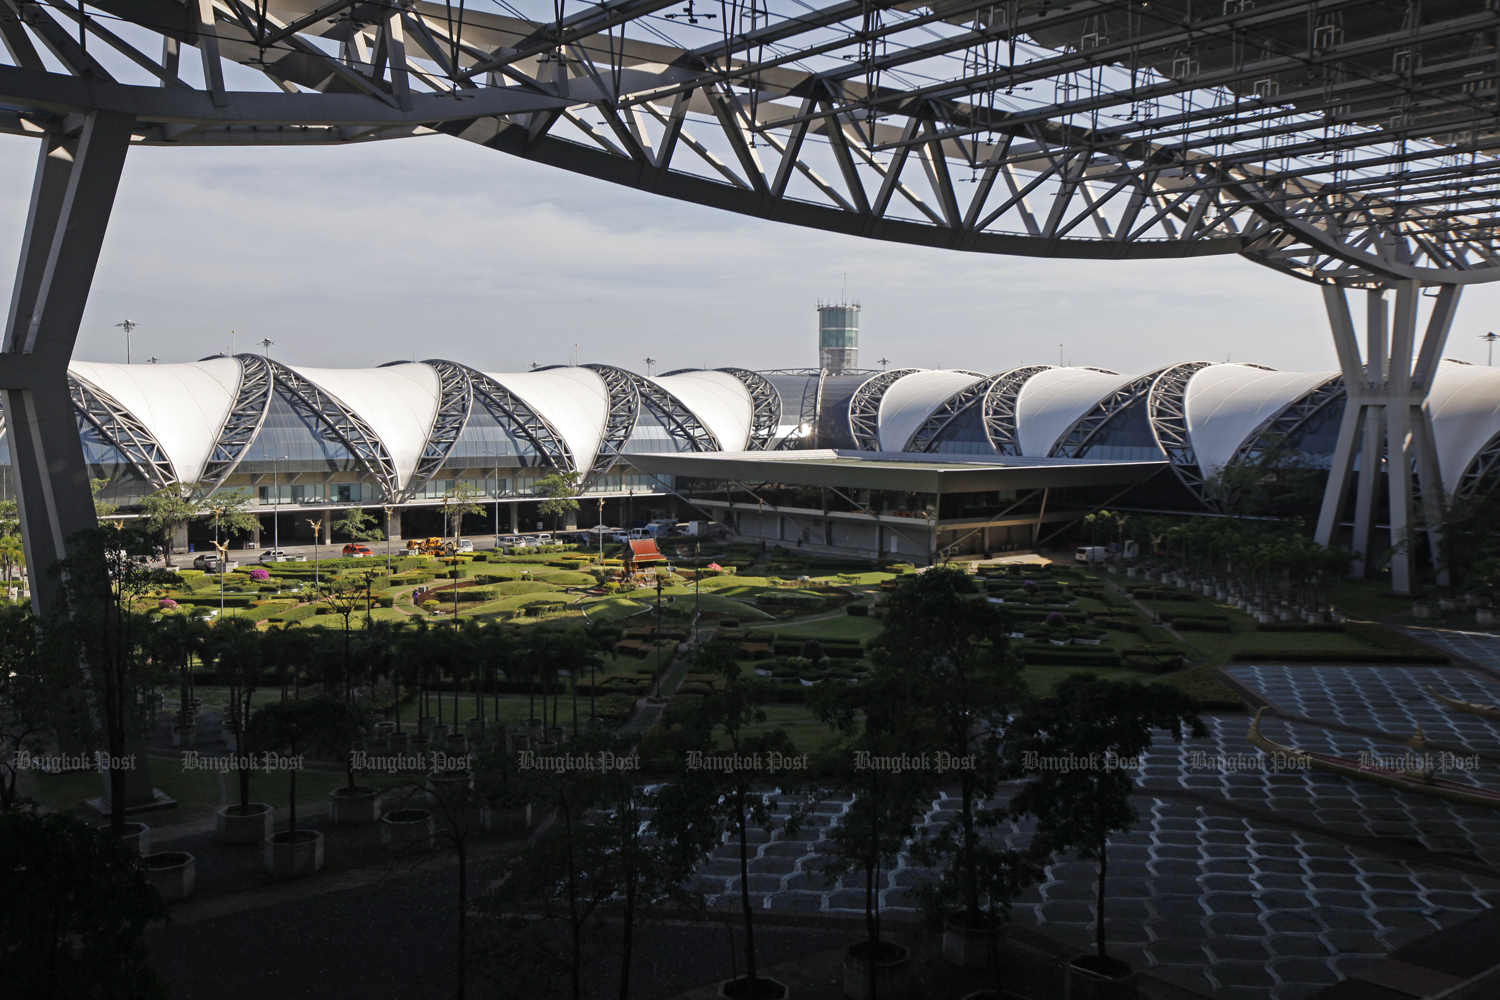 Suvarnabhumi airport will have a rail link to connect with Don Mueang and U-tapao airports in the future.